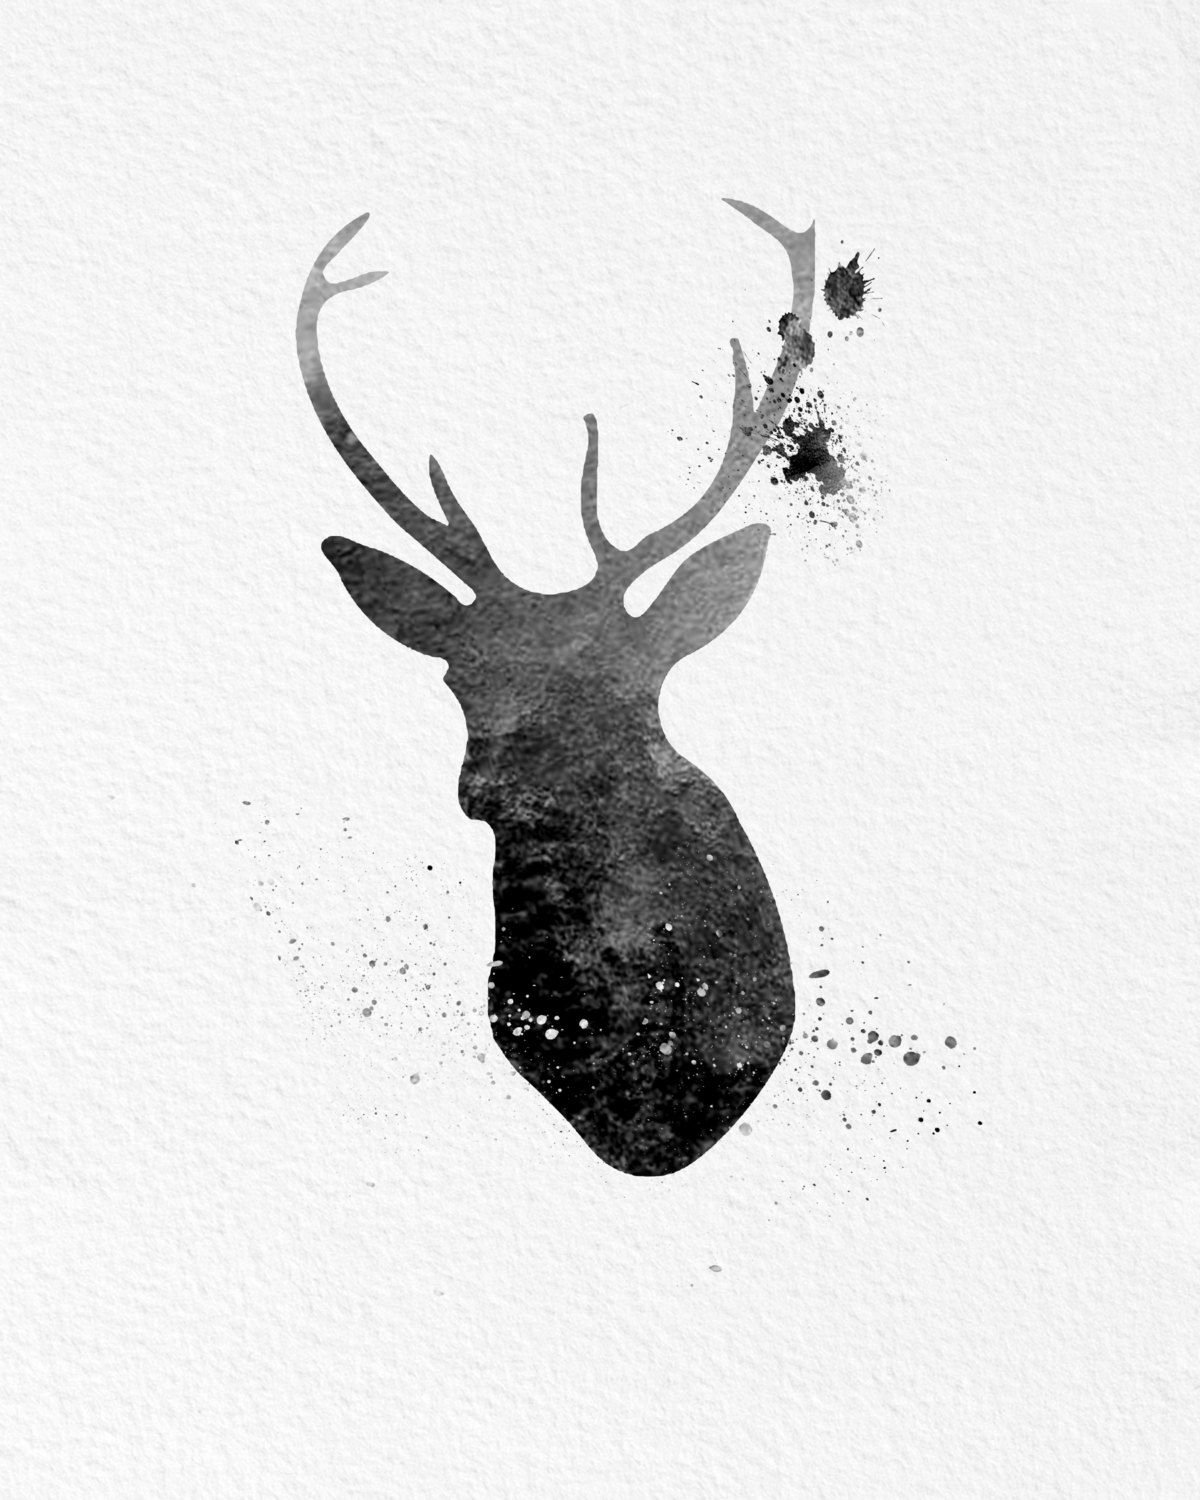 Attirant ... Watercolor Art Buck Deer Gift Modern 8x10 Wall Art Decor Buck Deer Wall  Hanging Print Black